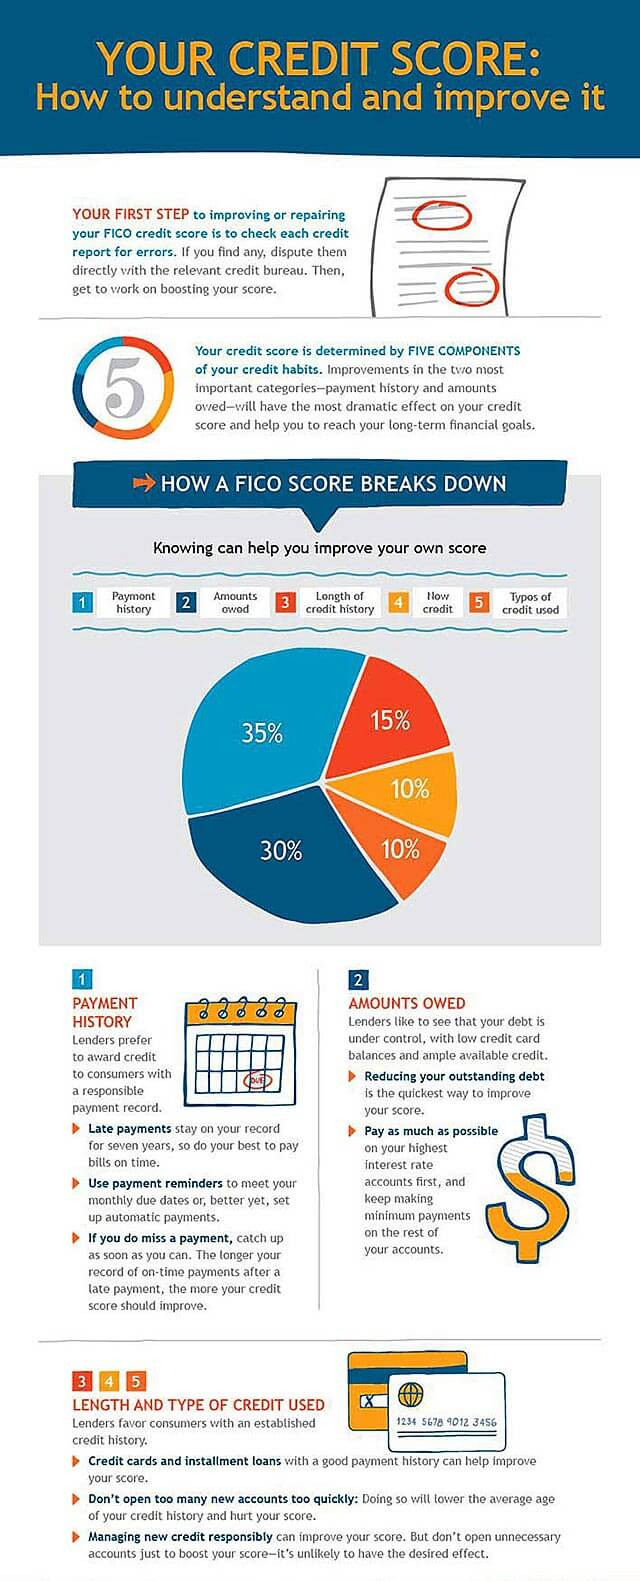 How to understand and improve your credit score